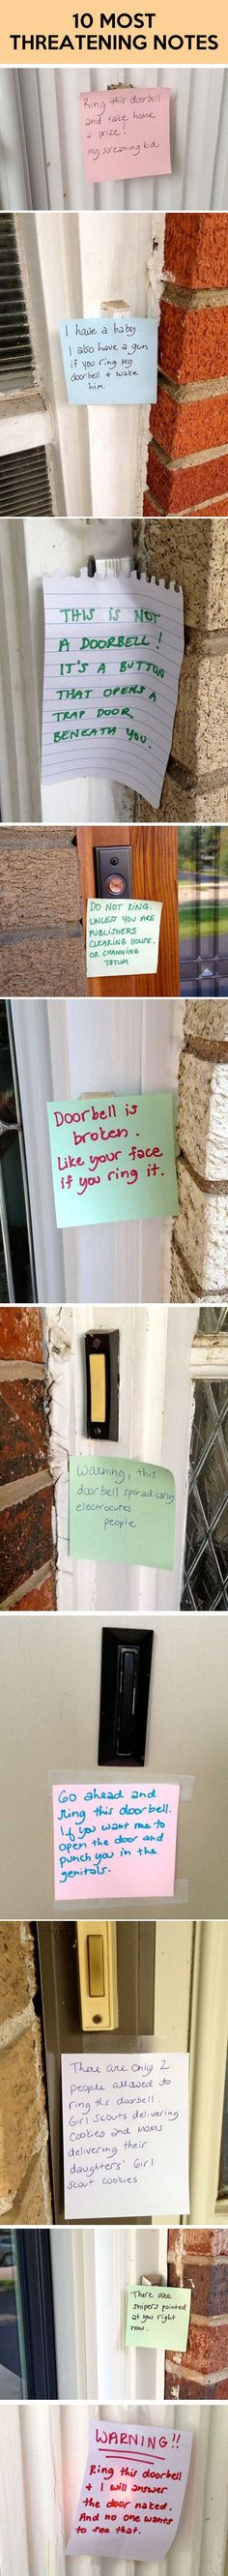 Doorbell threats. Need to get writin' me a note it seems....